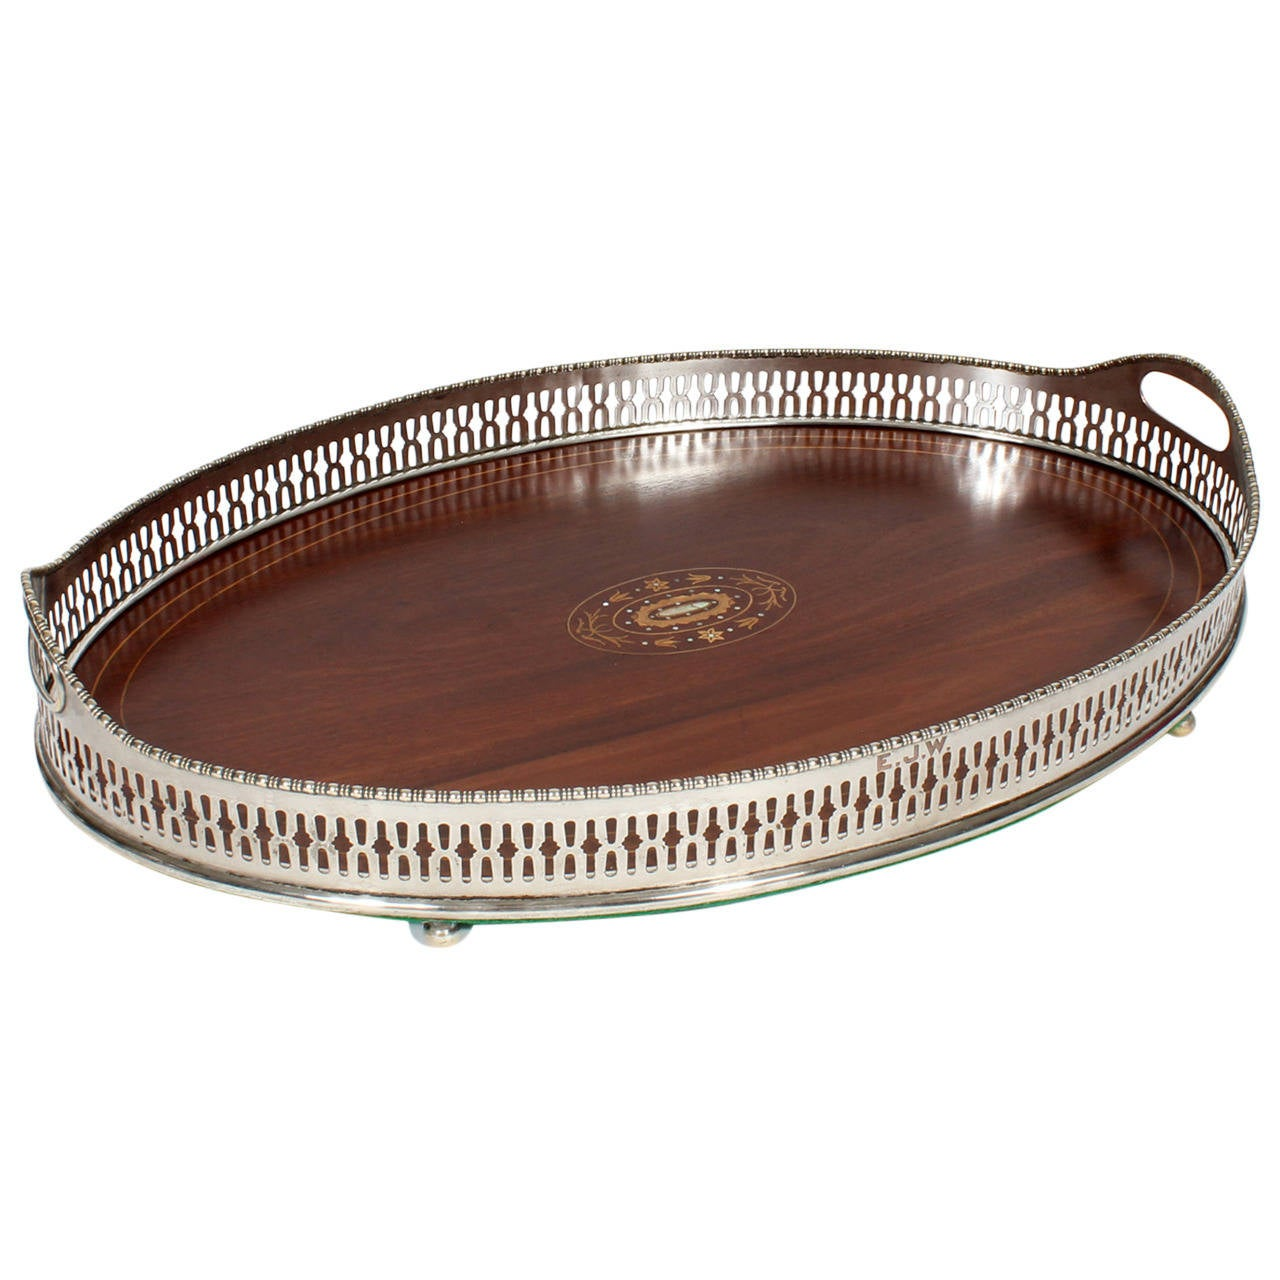 Favorite Mahogany Serving Tray For Sale at 1stdibs ON63